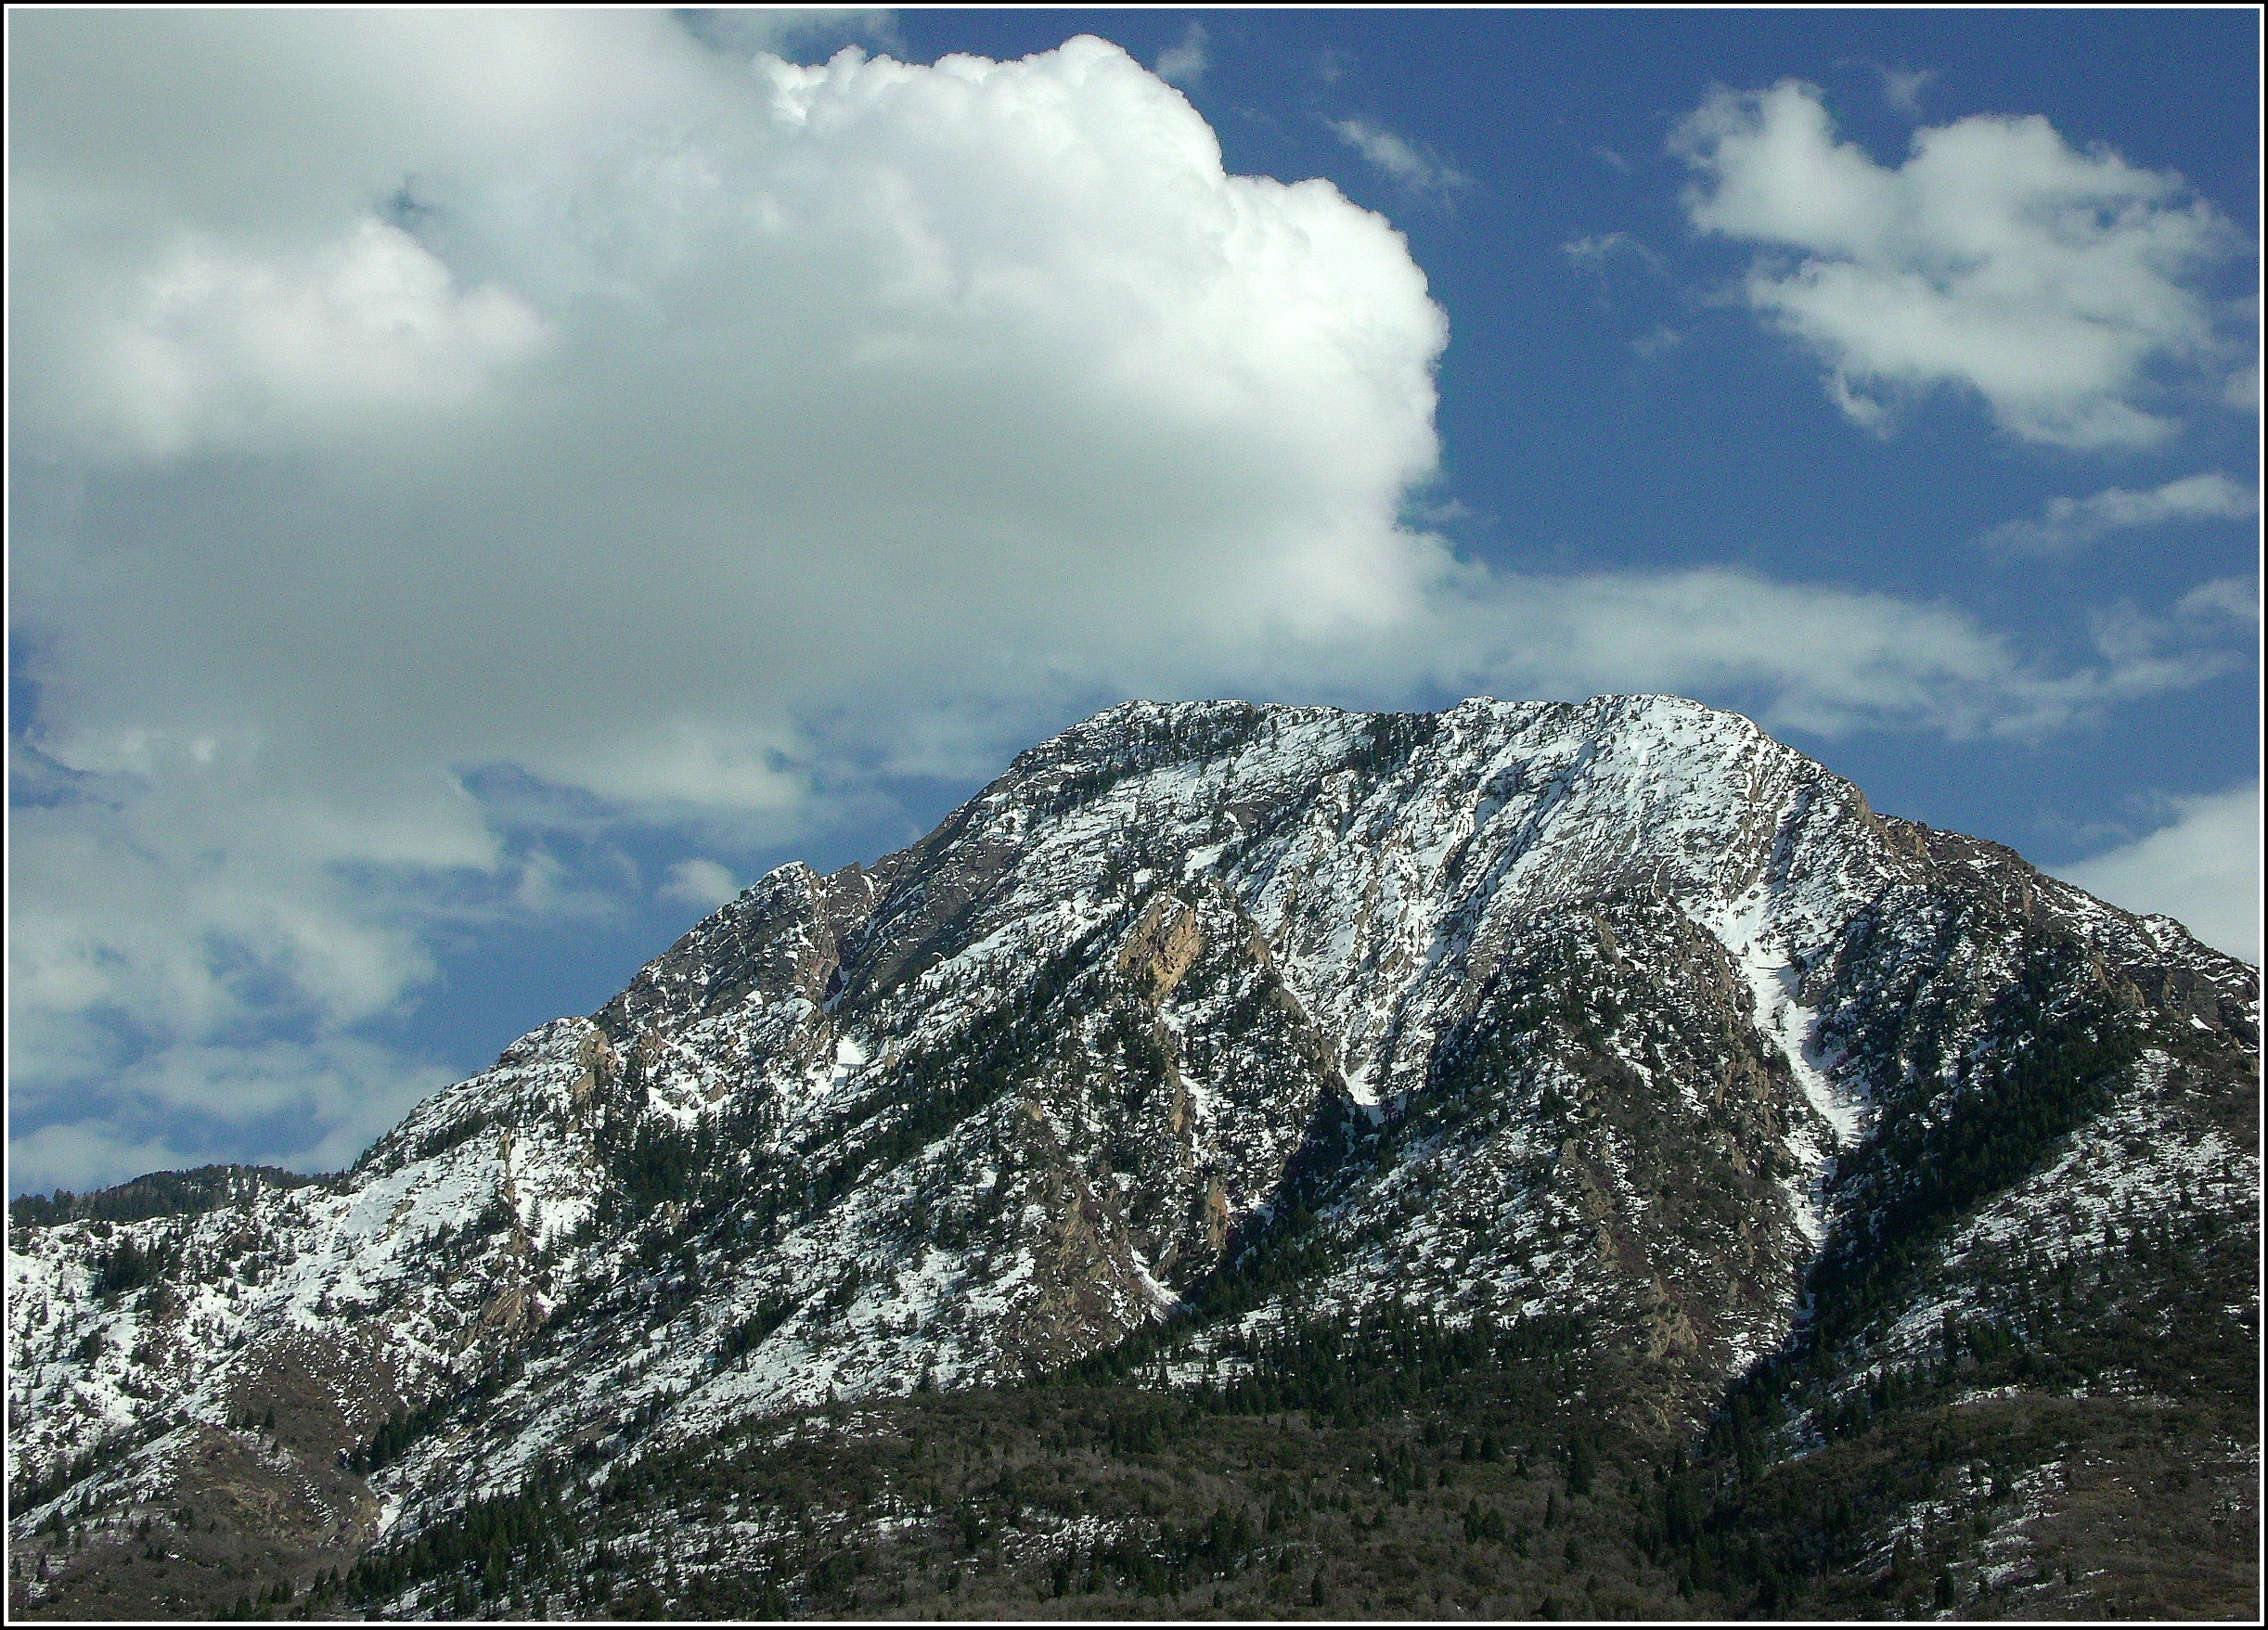 Mt olympus scotts placeages and words clouds over mt olympus sciox Choice Image